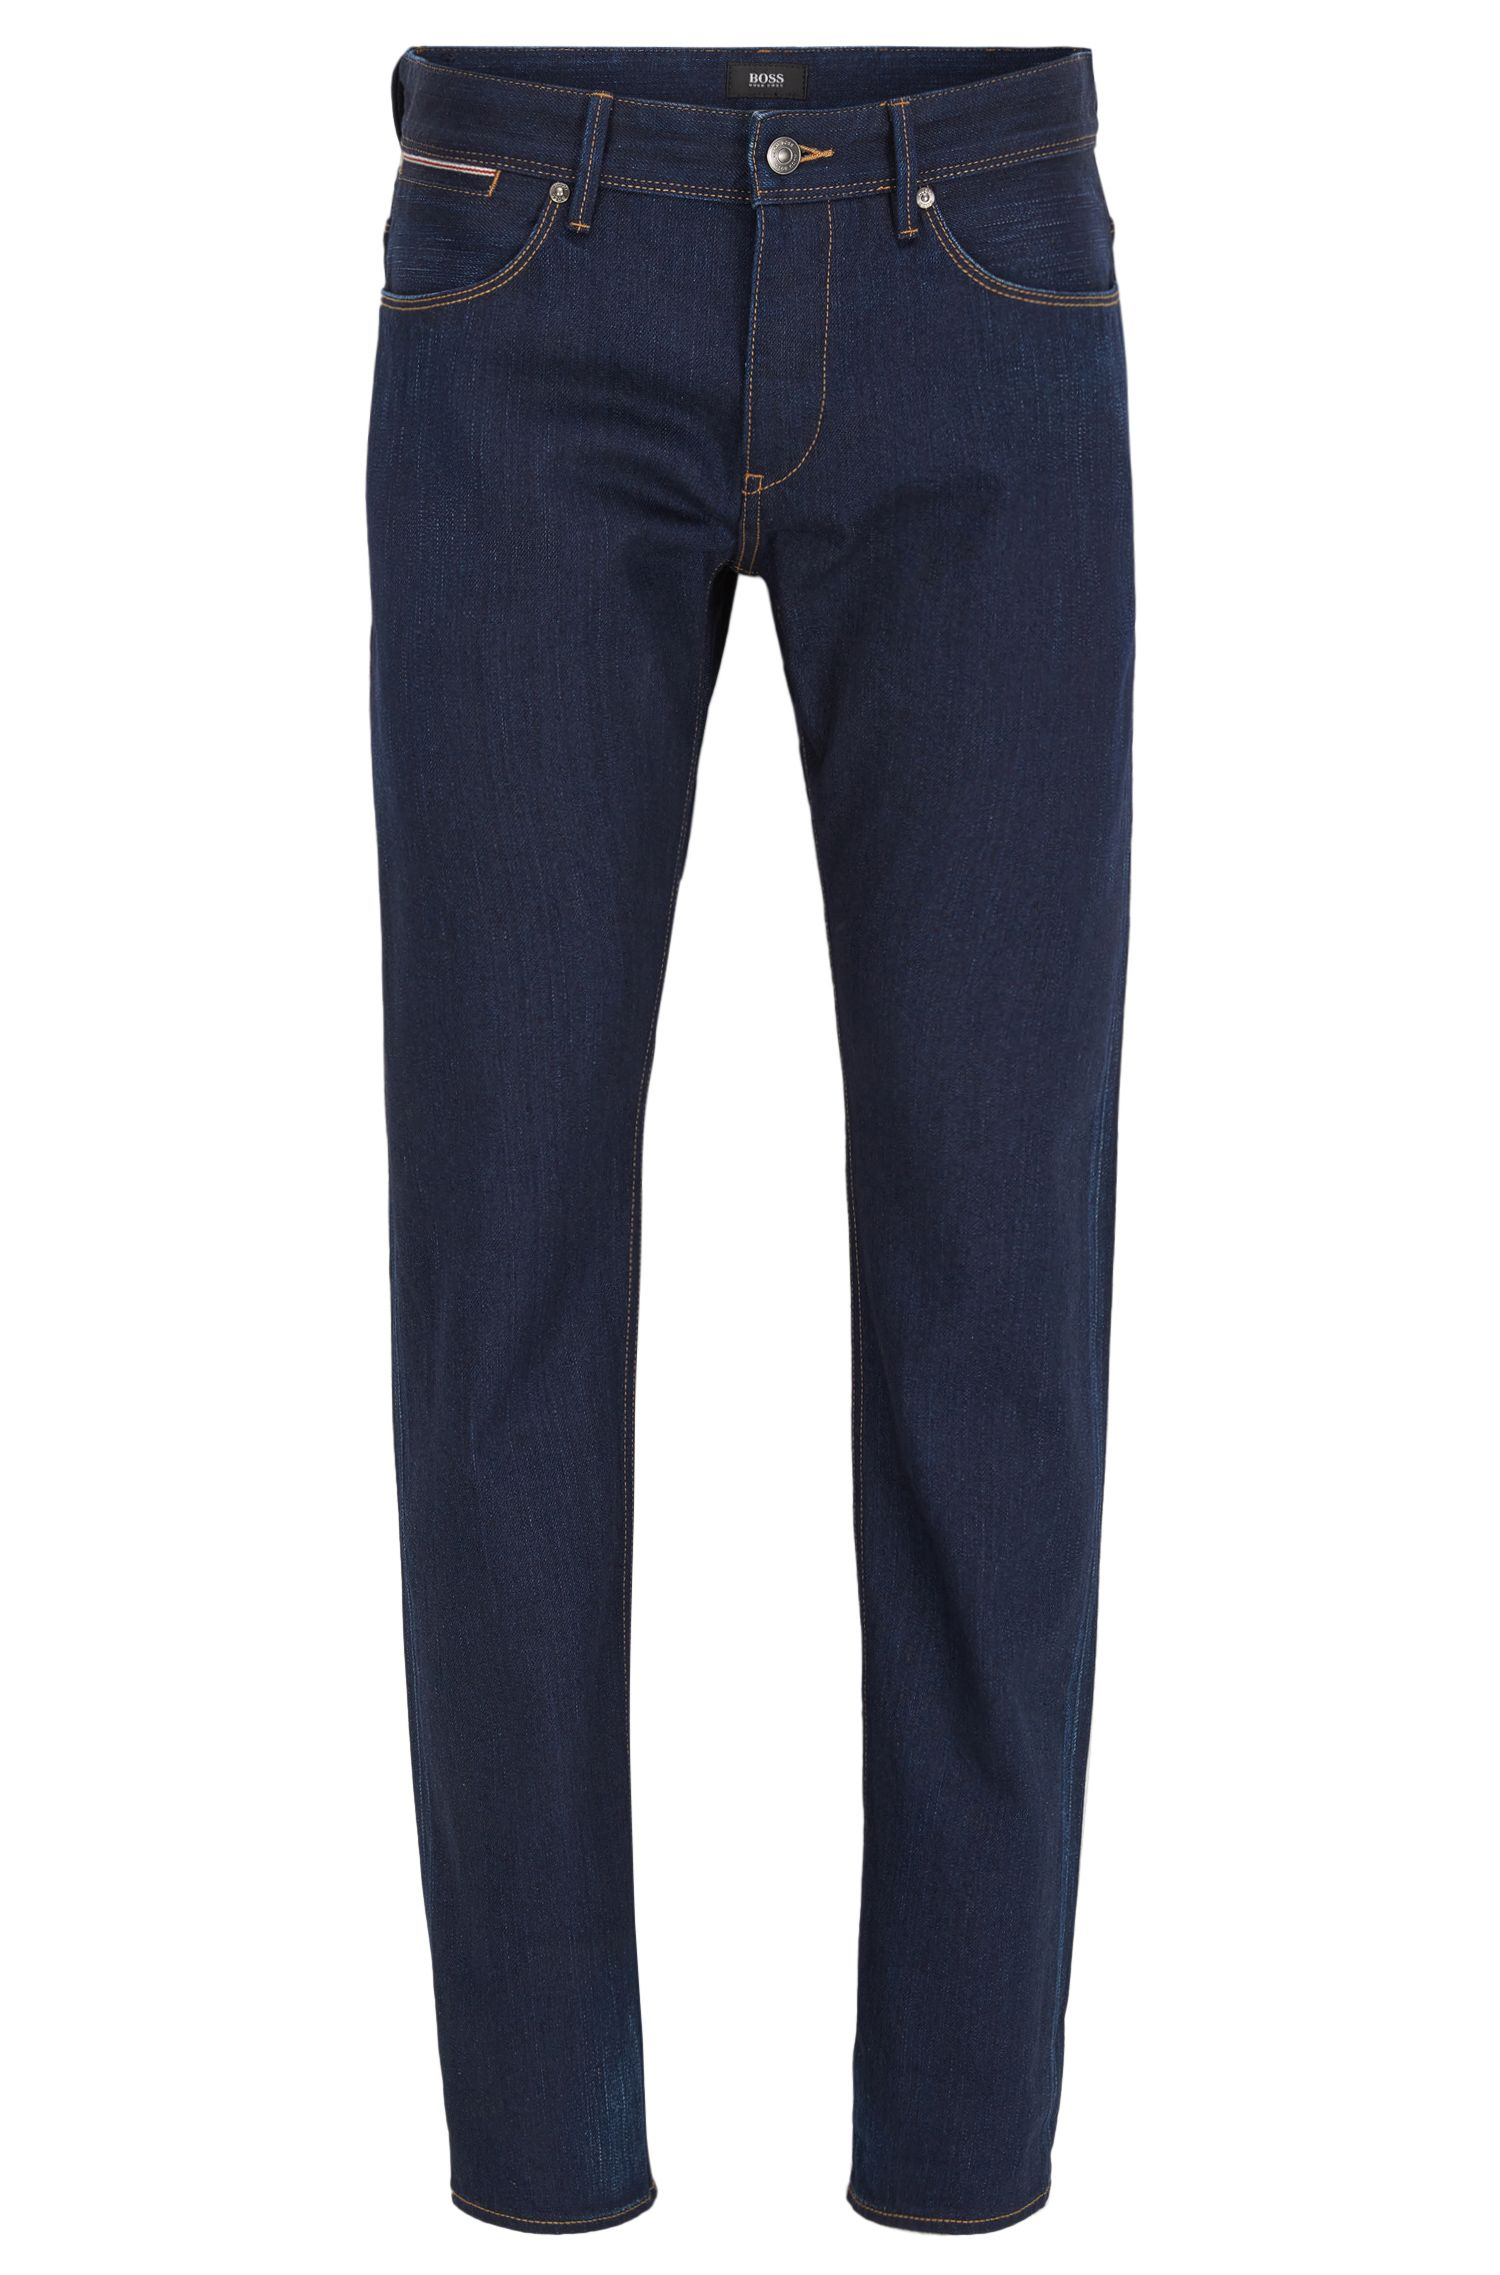 Jeans slim fit blu scuro in denim con cimosa